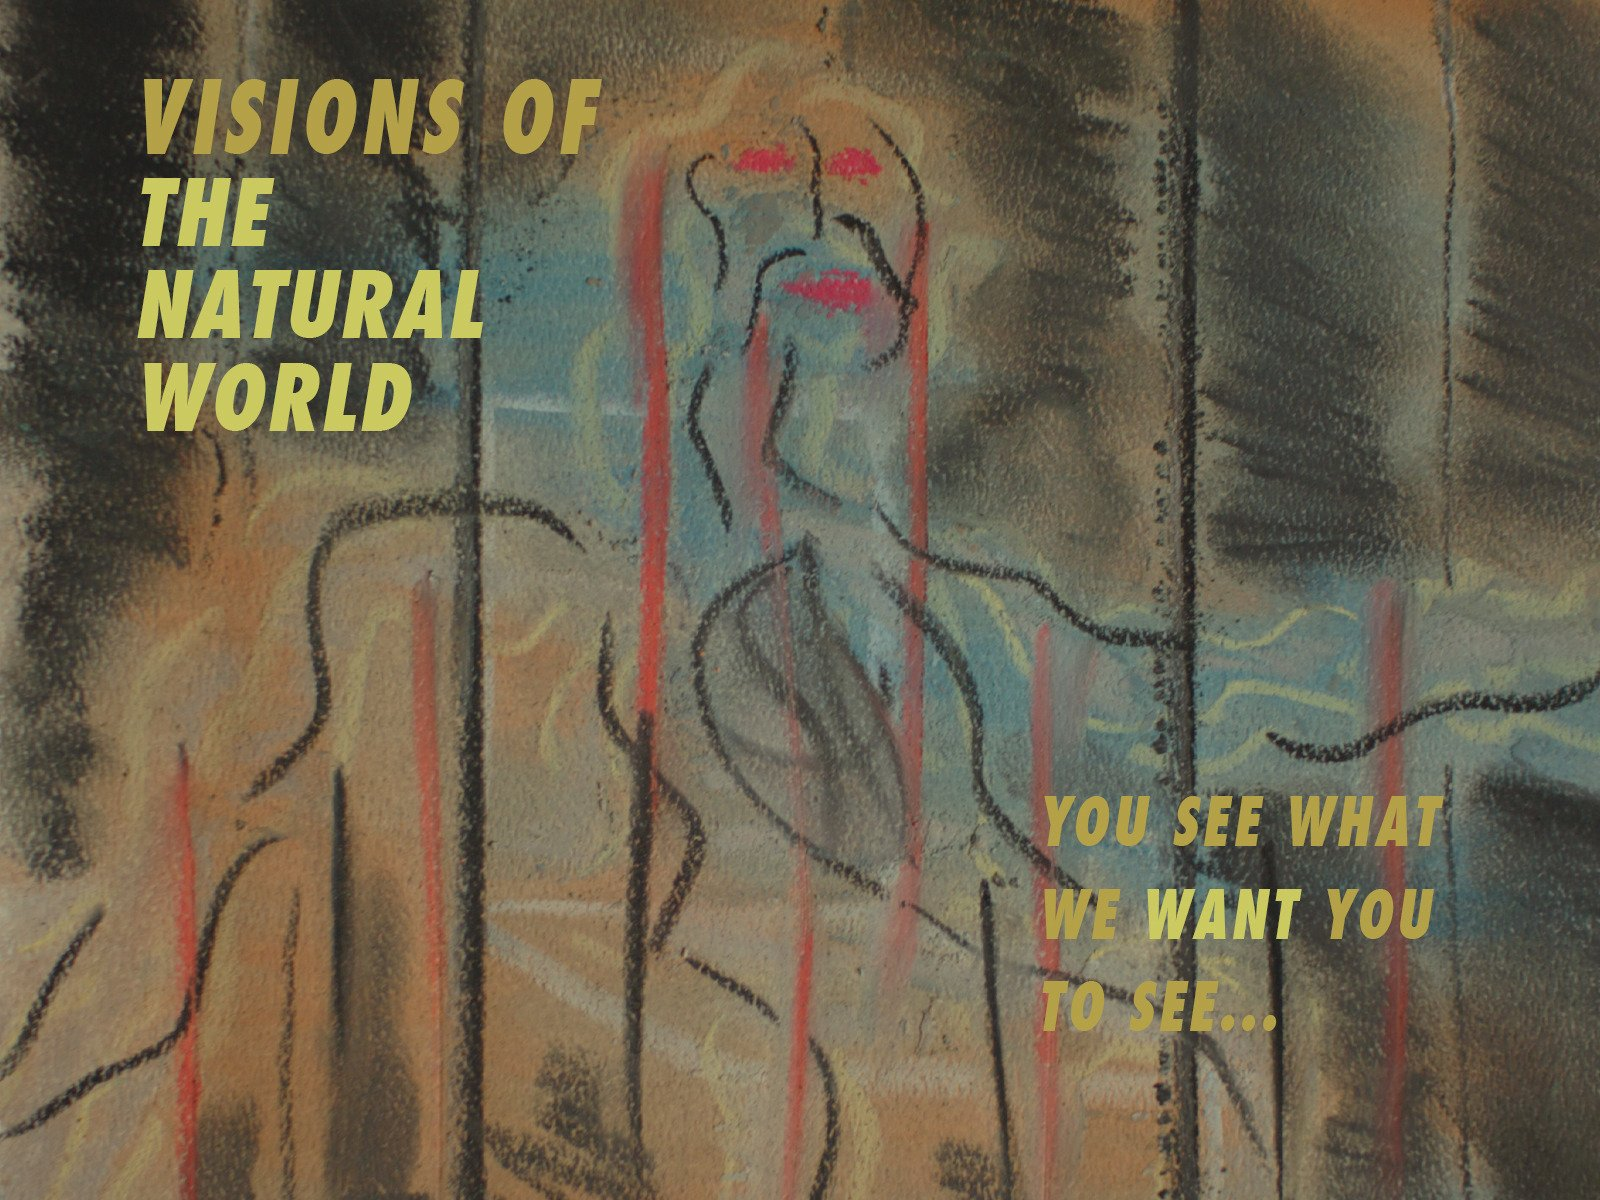 Visions Of The Natural World - Season 1